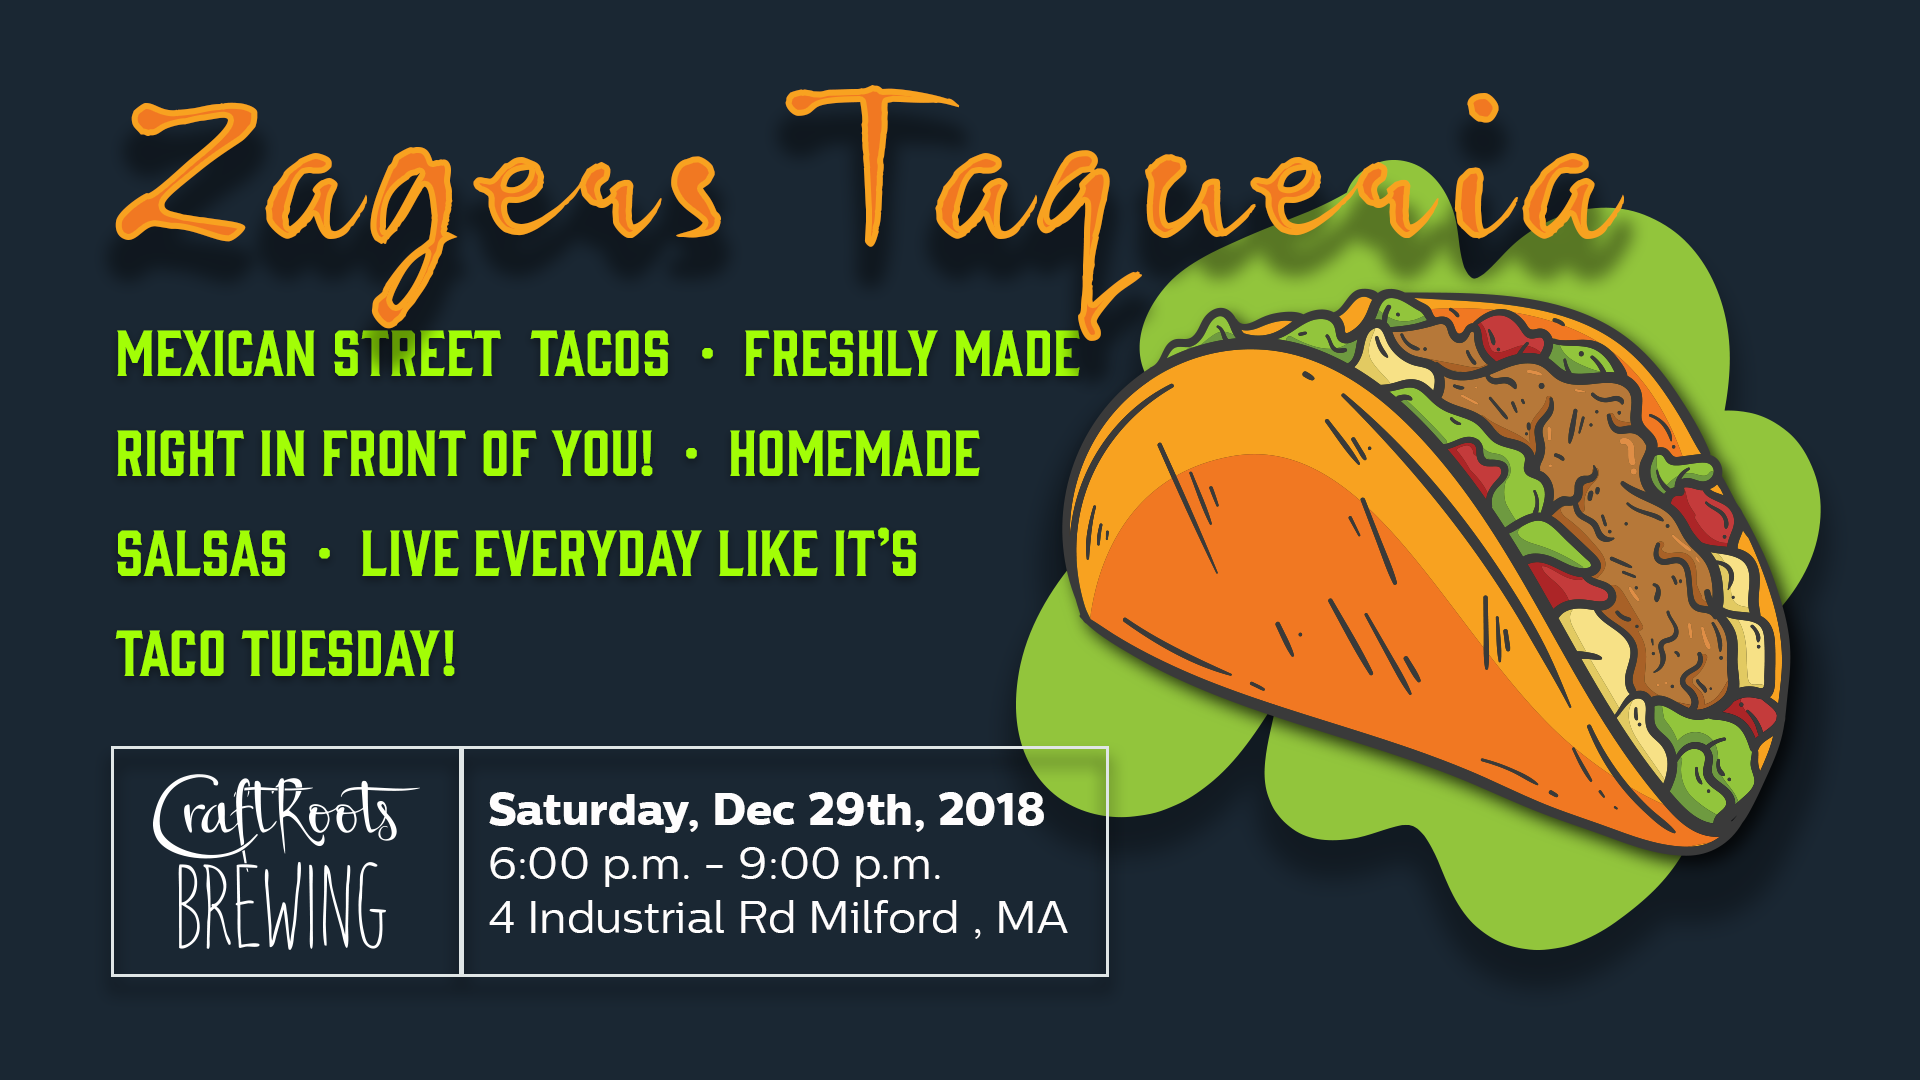 Zagers-tacos-facebook.png